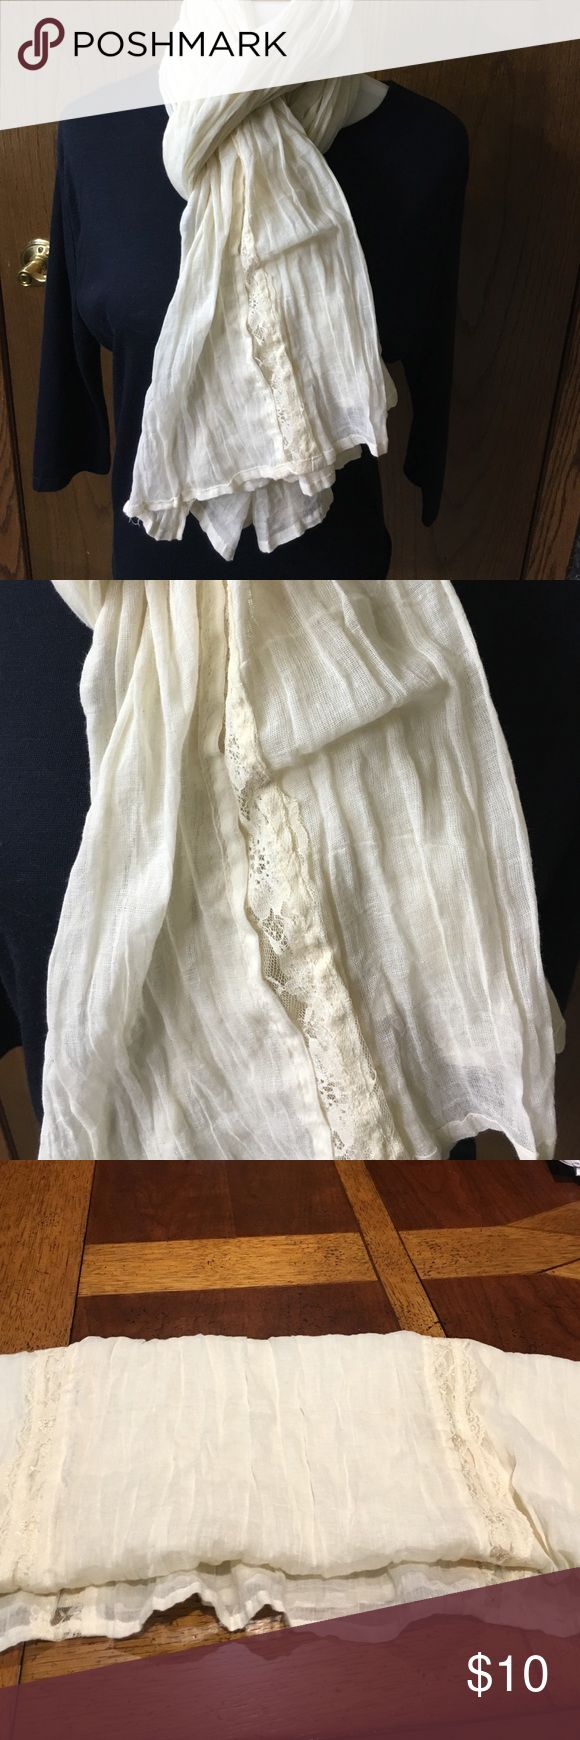 """Off-white scarf with lace insets Off-white scarf with lace insets. 80"""" long by 30"""" wide. Lace inset runs down two sides of scarf. Will go with anything! No brand. EUC s/f p:f Accessories Scarves & Wraps"""